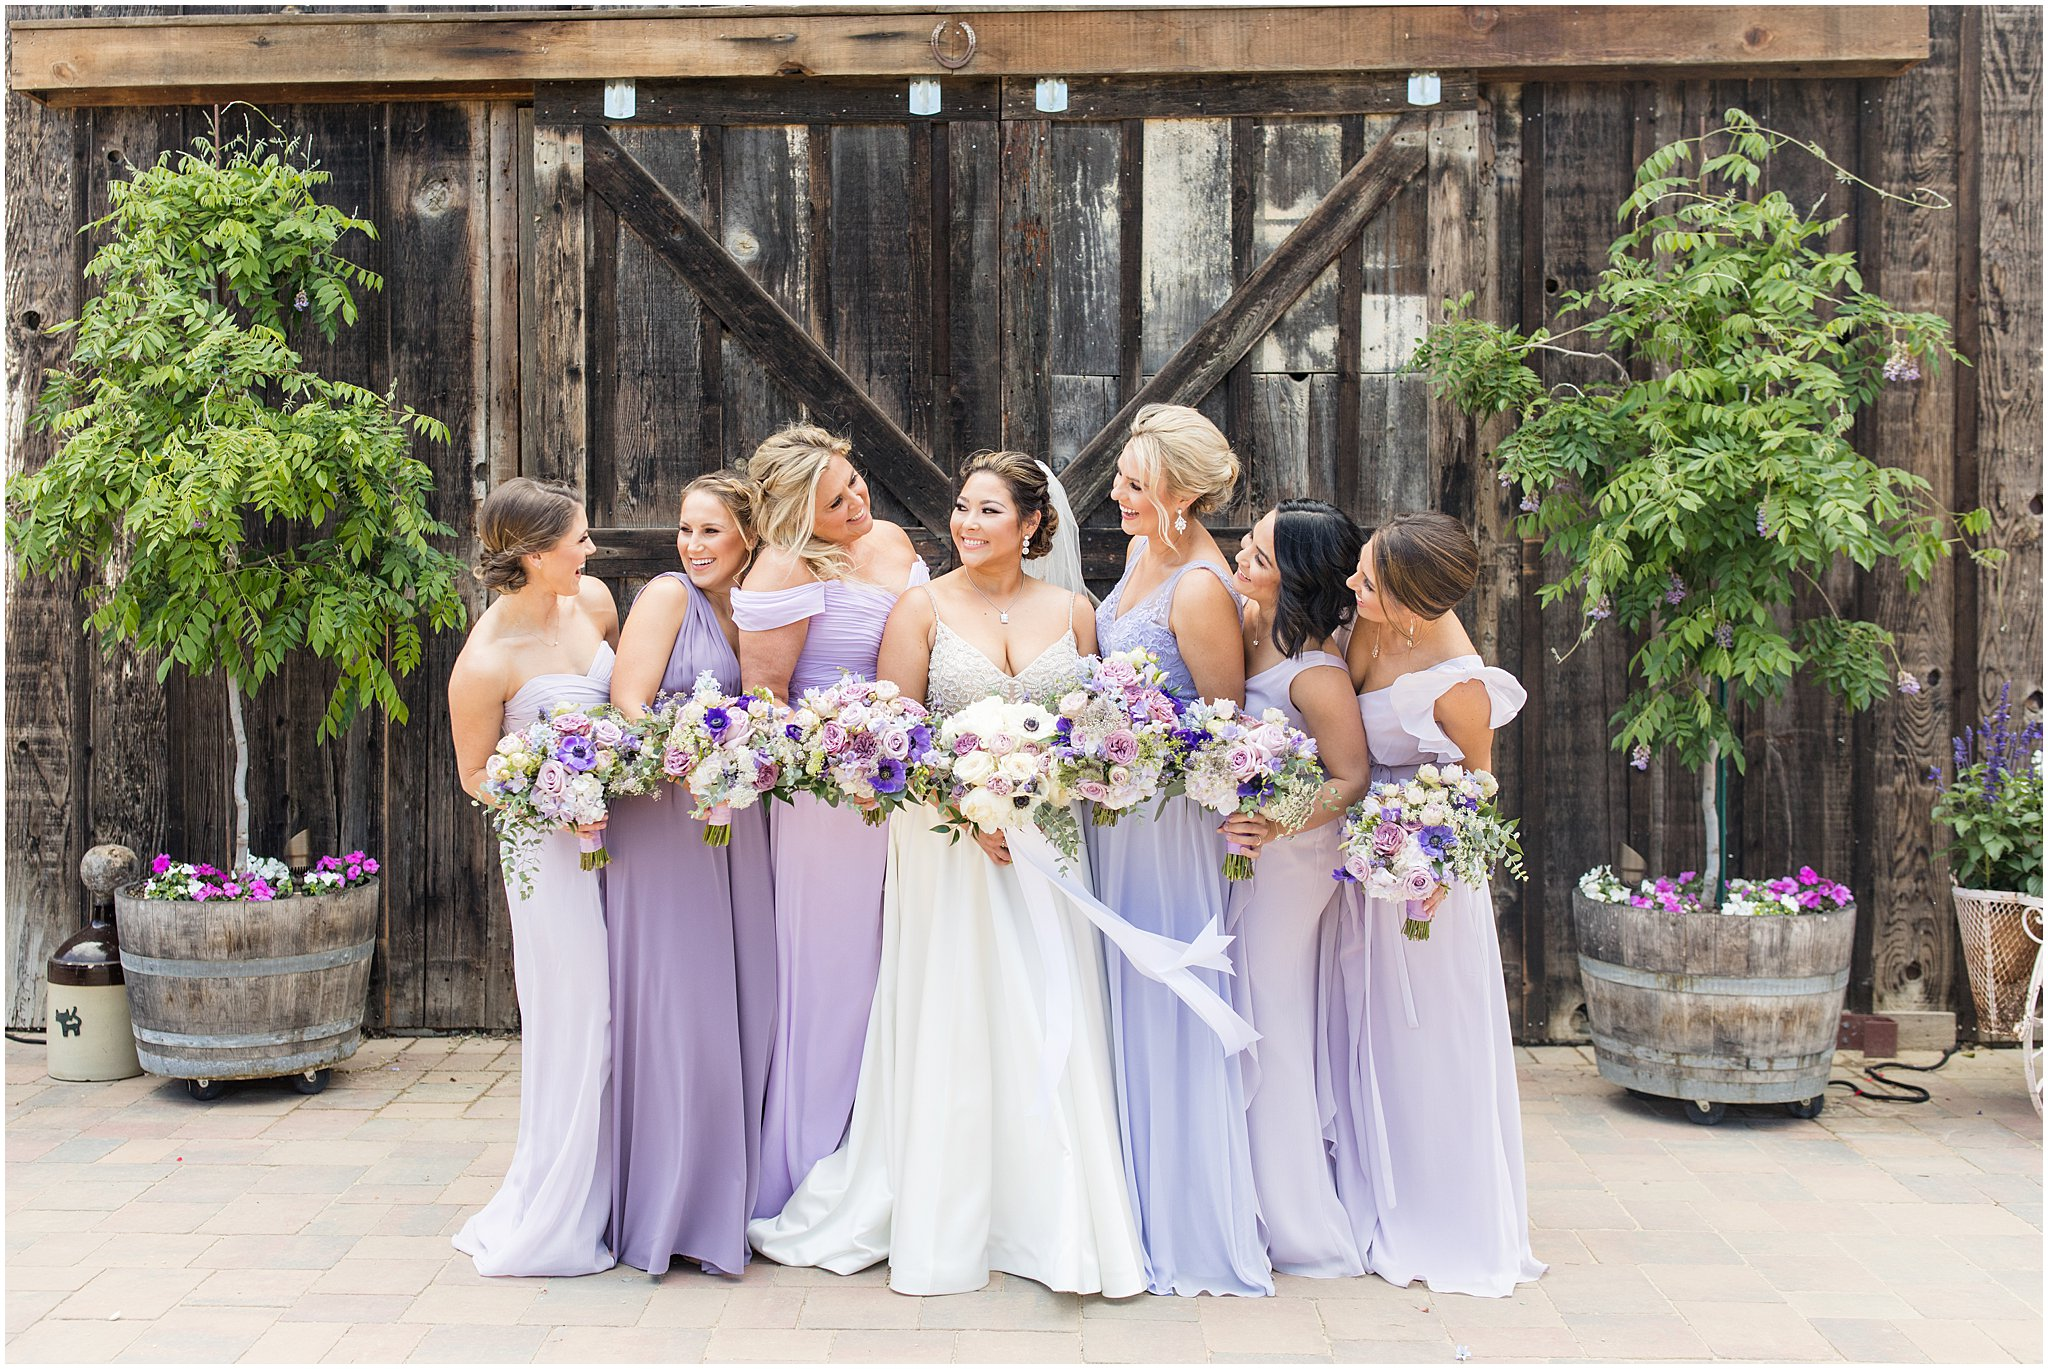 2019 wedding san juan bautista hacienda de leal vineyards bay area wedding photographer_0028.jpg